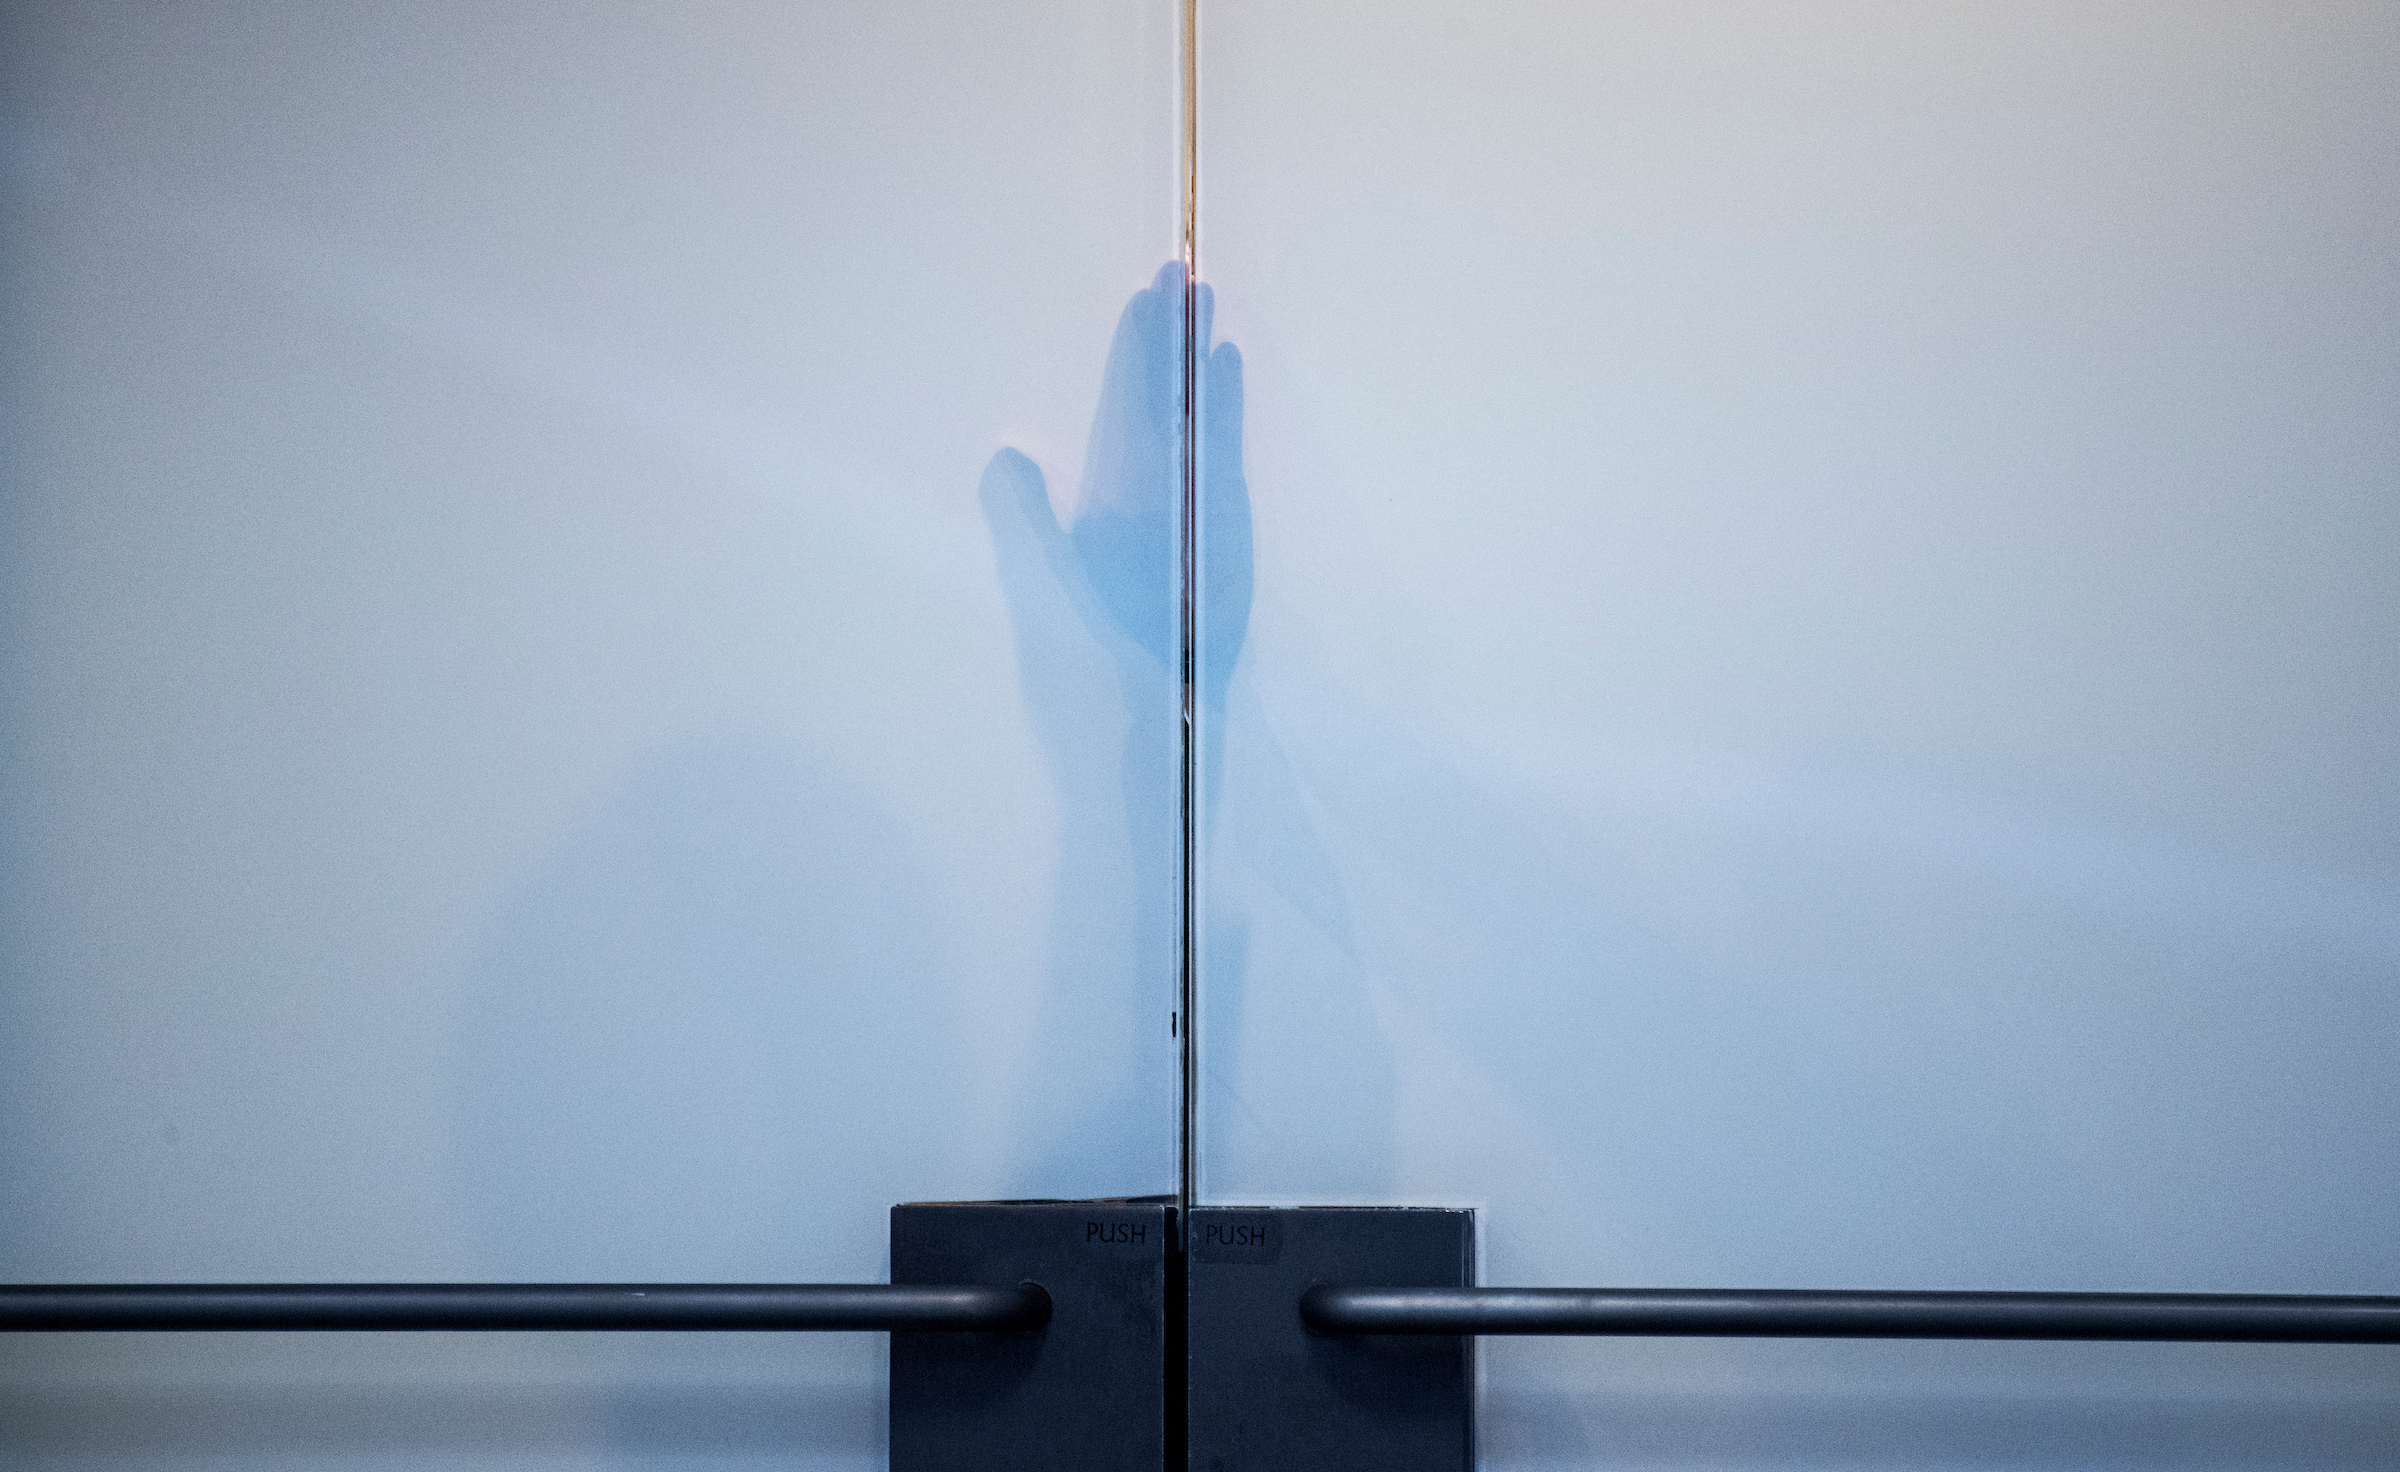 """UNITED STATES - MAY 11: An aide prepares to open the door to a meeting between Deputy Attorney General Rod Rosenstein, Chairman Richard Burr, R-N.C., Ranking Member Mark Warner, D-Va., after a Senate (Select) Intelligence Committee hearing in Hart Building titled """"World Wide Threats"""" on May 11, 2017. (Photo By Tom Williams/CQ Roll Call)"""